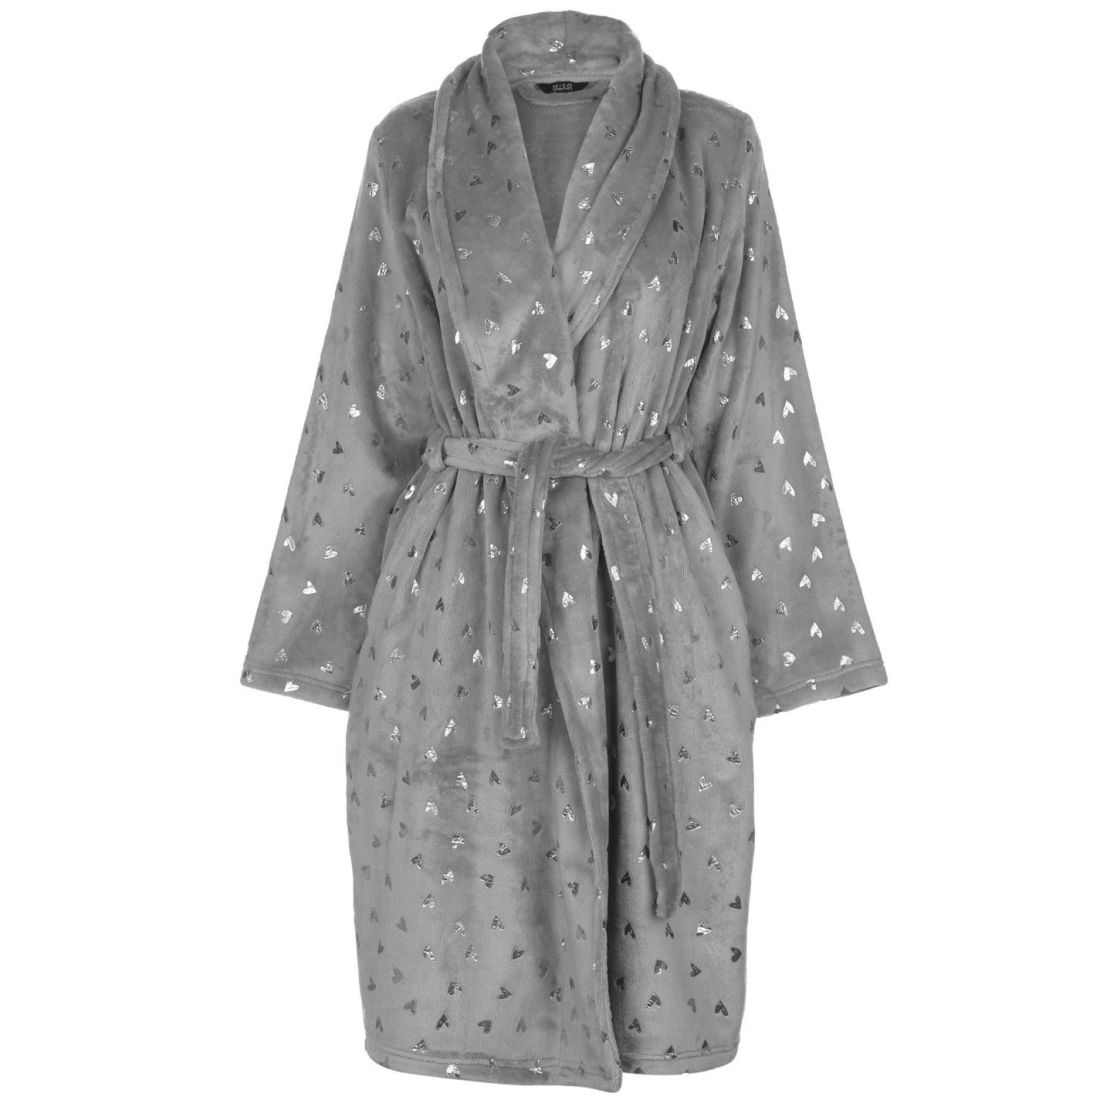 93b287d1058 Miso Womens Foil Print Robe Gown Long Sleeve Warm Block Colour Tie ...